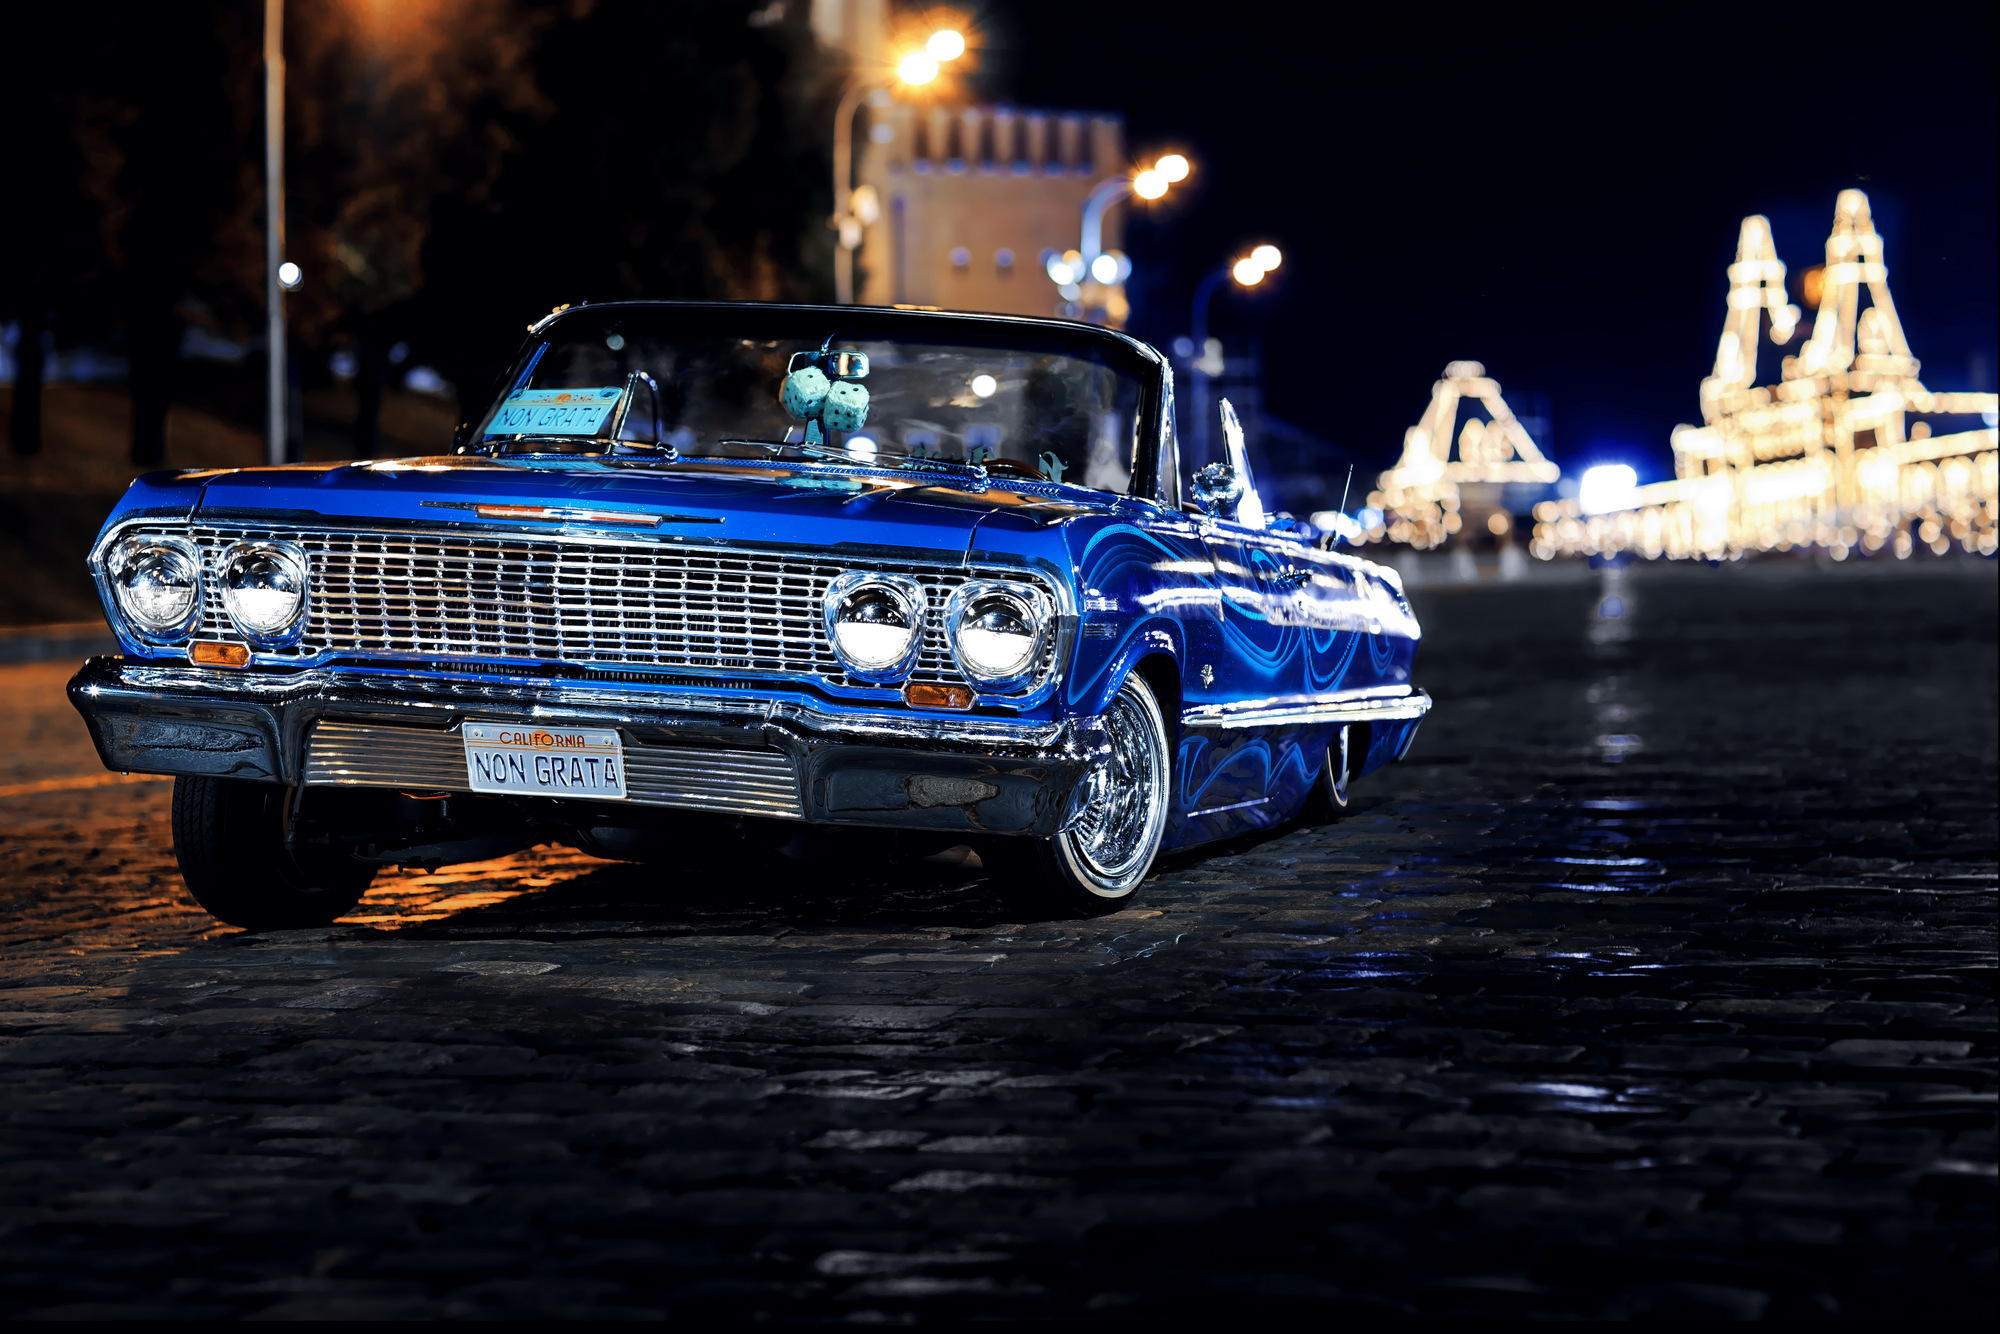 Raiders Wallpaper Hd 1 1963 Chevrolet Impala Hd Wallpapers Background Images